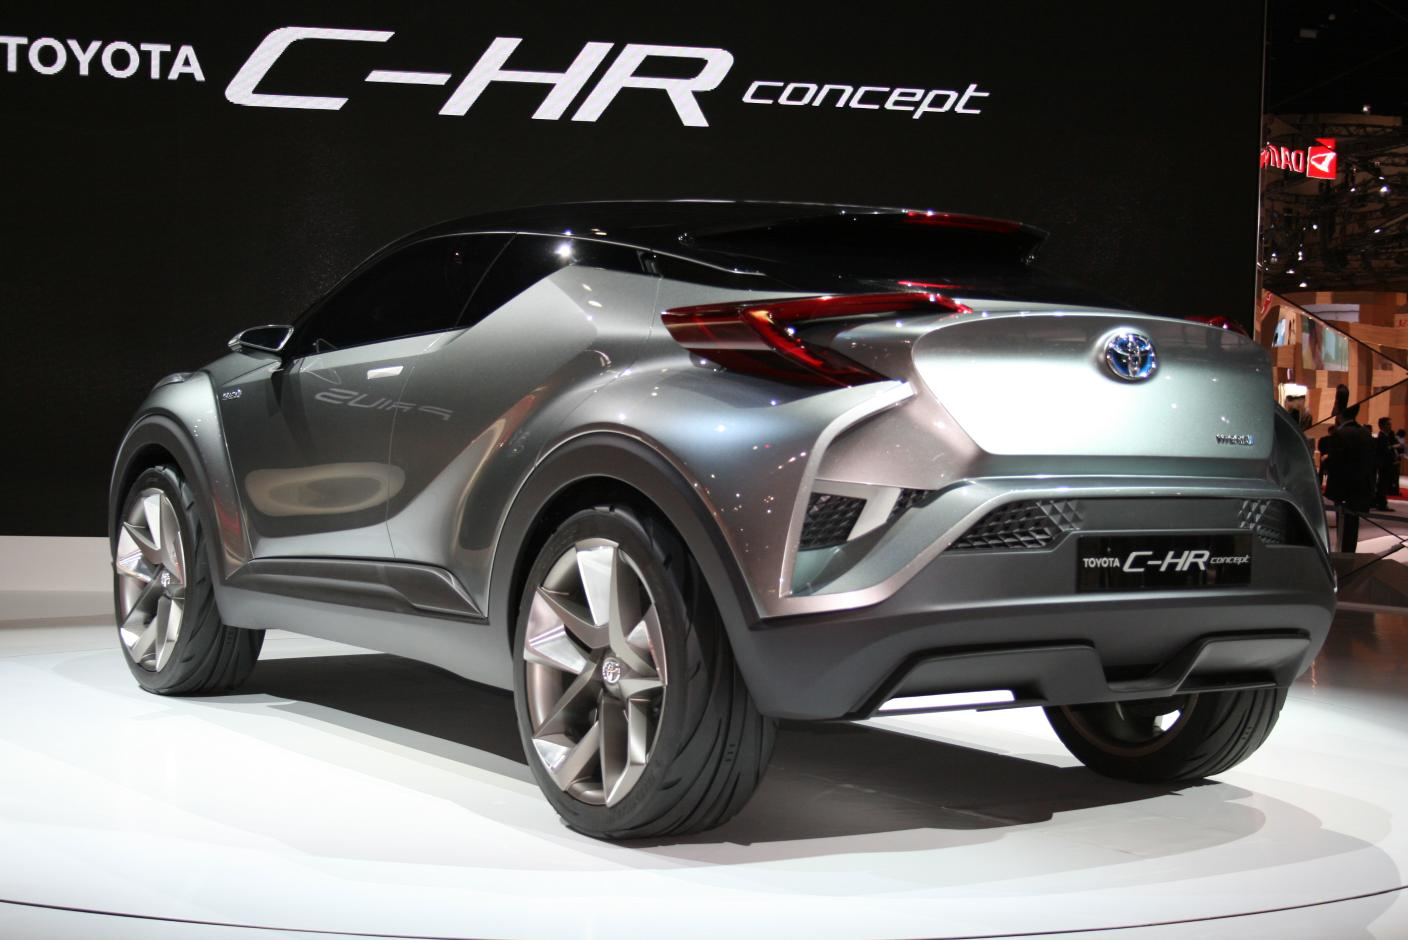 Toyota C-HR is one of the coolest high tech cars 2017